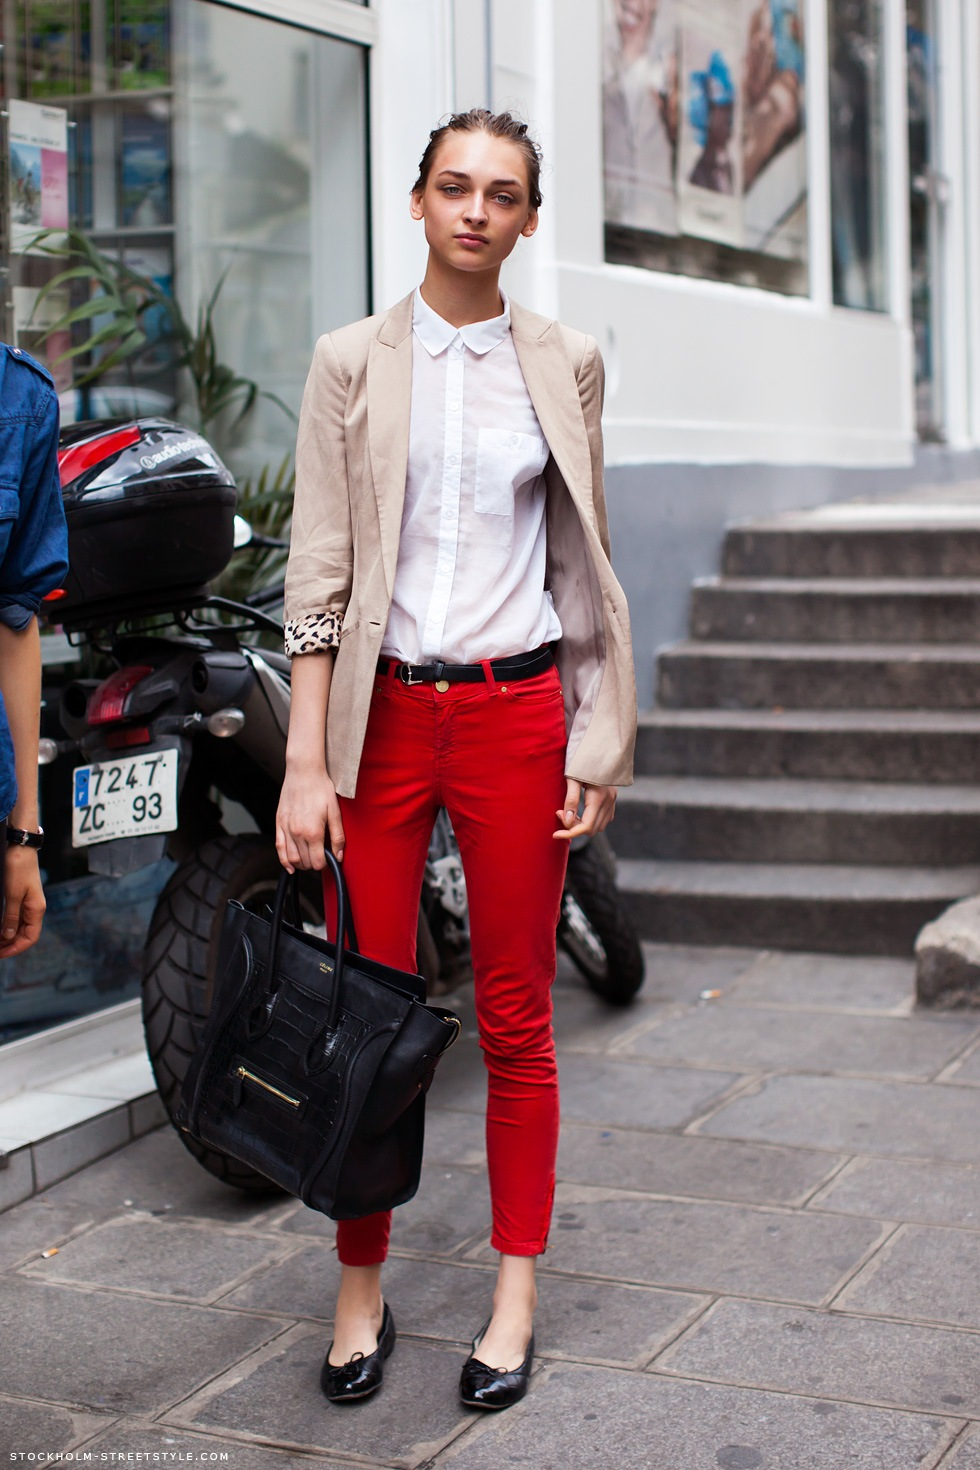 She styled her red pants with a gray blazer, gray top, and black shoes. Since then, Red Pants have grown in popularity as bloggers from Los Angeles, San Diego, and New York have discovered them. Red Pants are generally seen in casual, chic, and comfortable style.